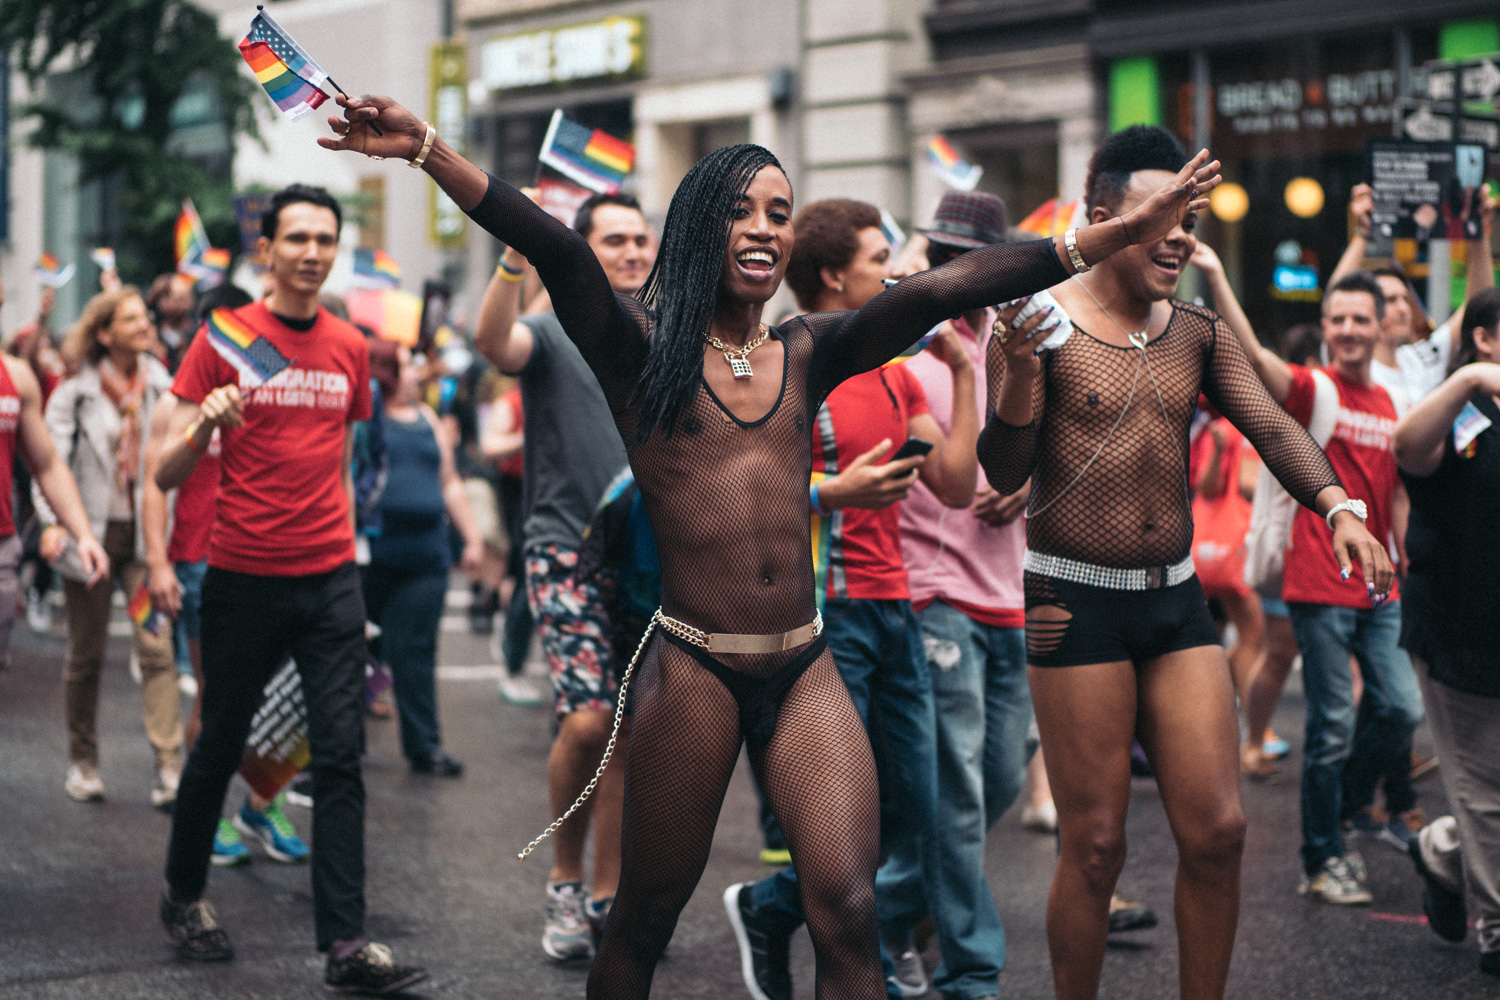 Feeling caught between the black and gay communities